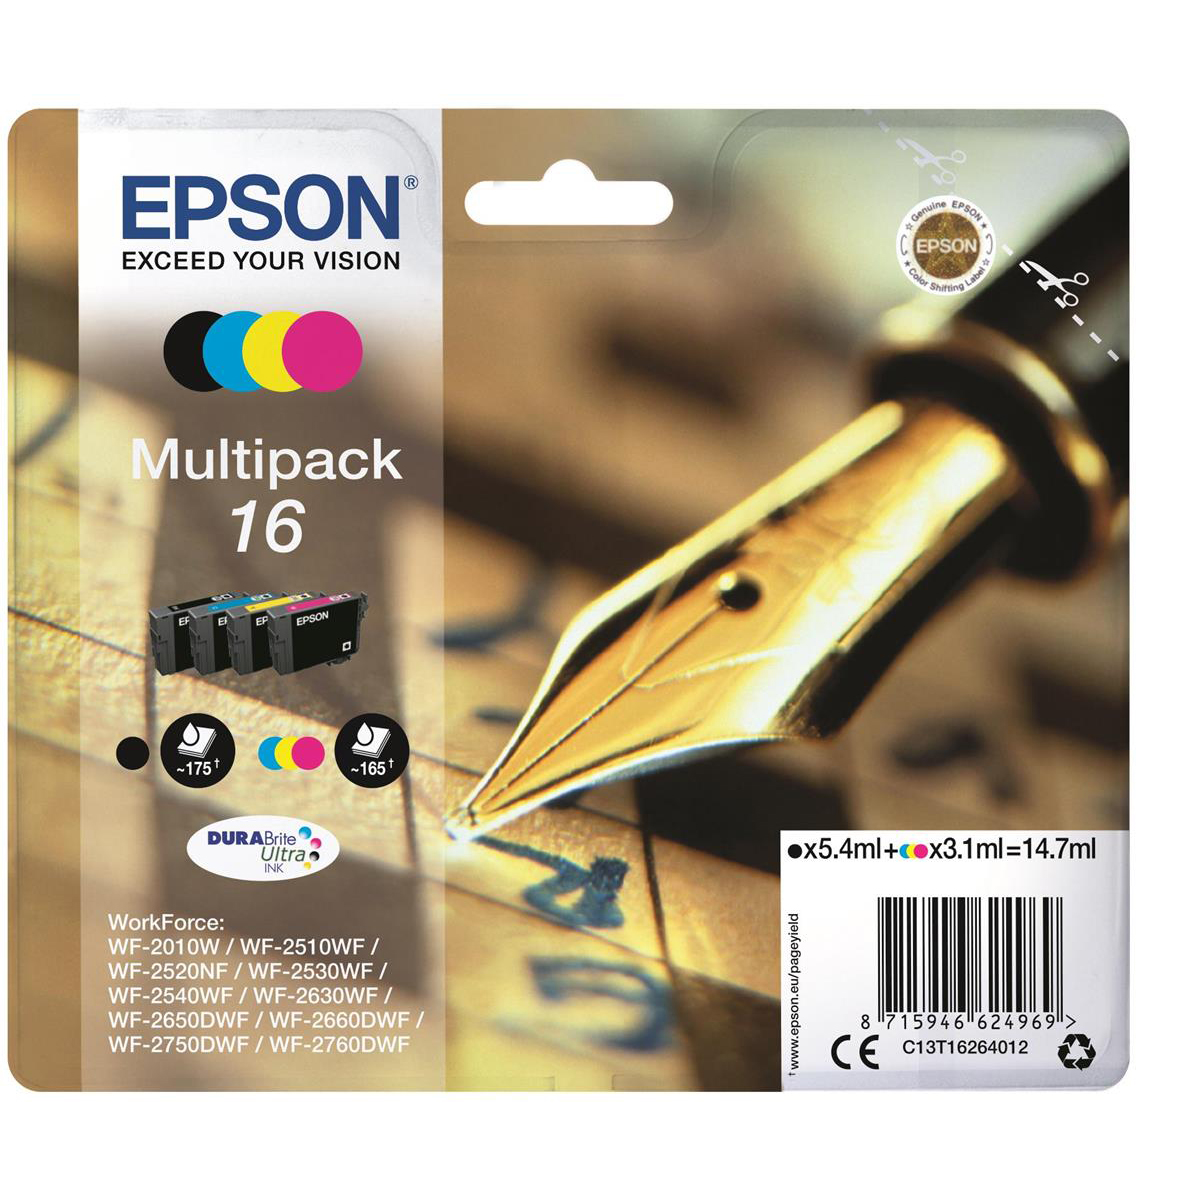 Epson 16 IJCart Pen&Crossword Cyan/Magenta/Yell 165pp3.3ml/Blk175pp 5.4ml Ref C13T16264012 [Pack4]